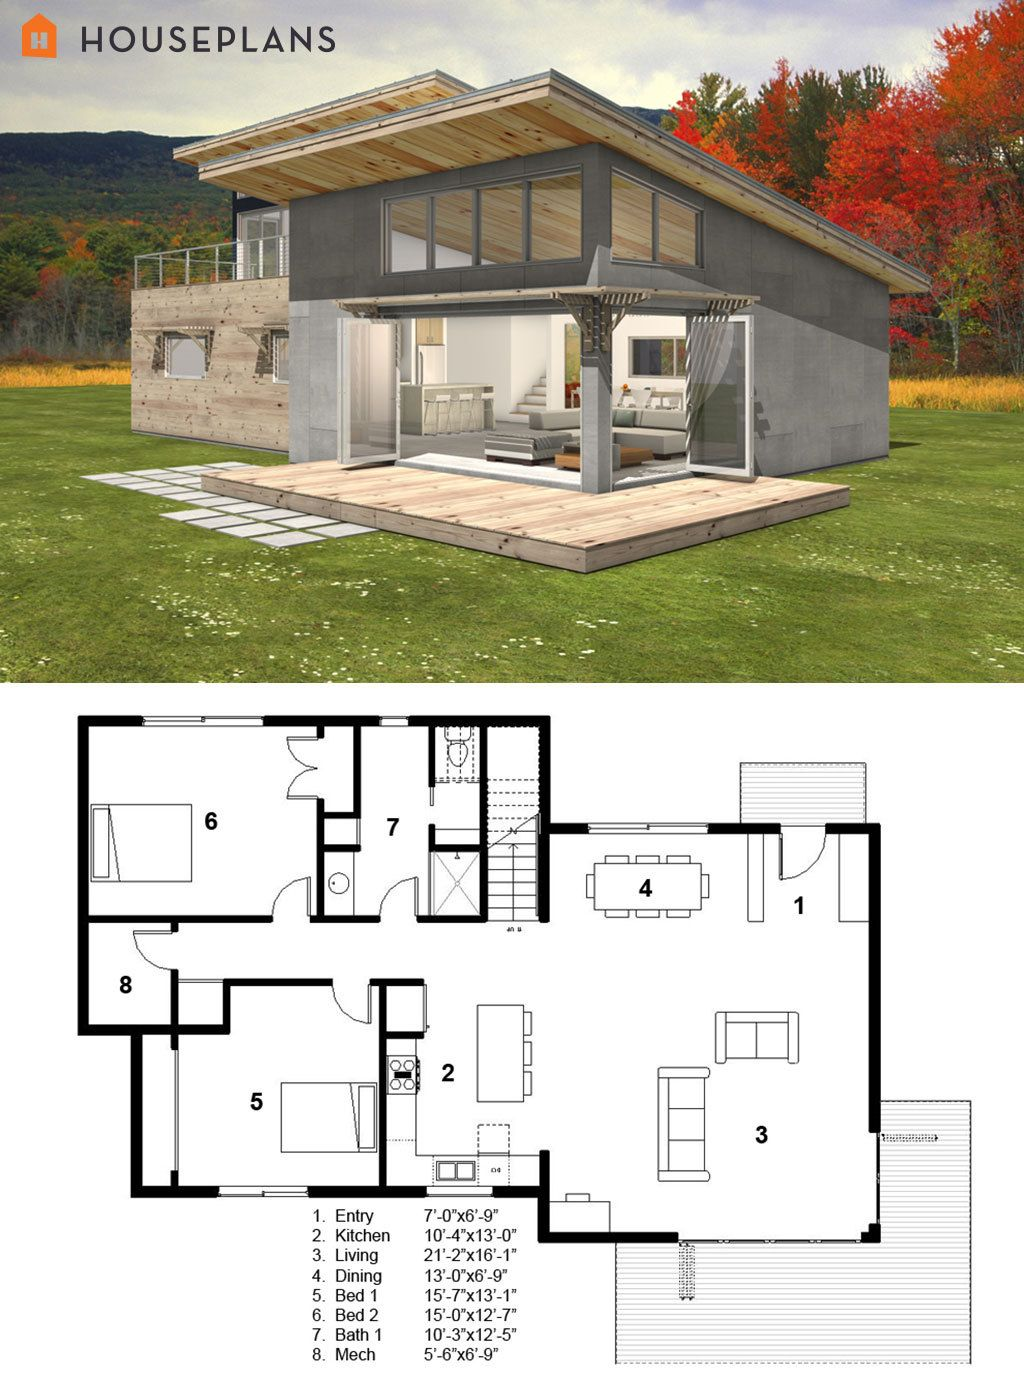 Modern style house plan 3 beds baths 2115 sq ft for Modern tiny house design